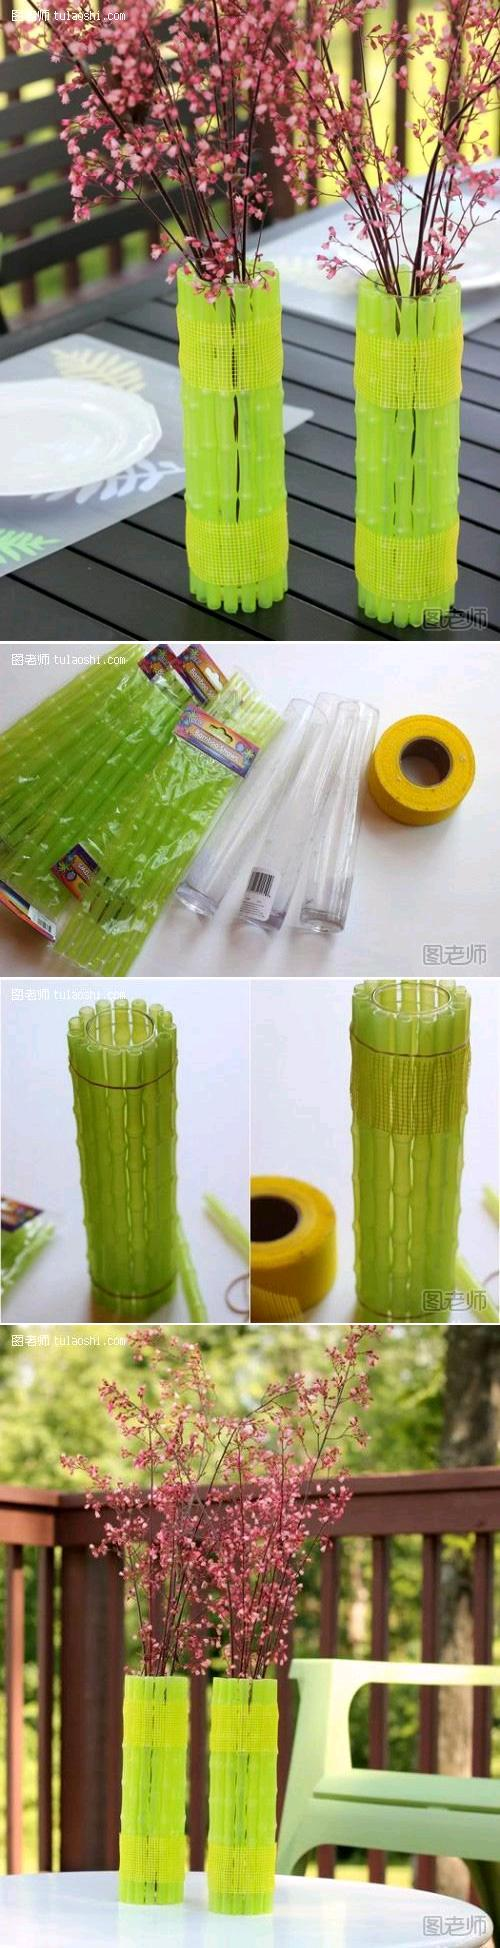 diy craft projects bamboo simple vase decor handmade crafts decoration creative neon tutorials spring fresh decorations vases easy glow dark